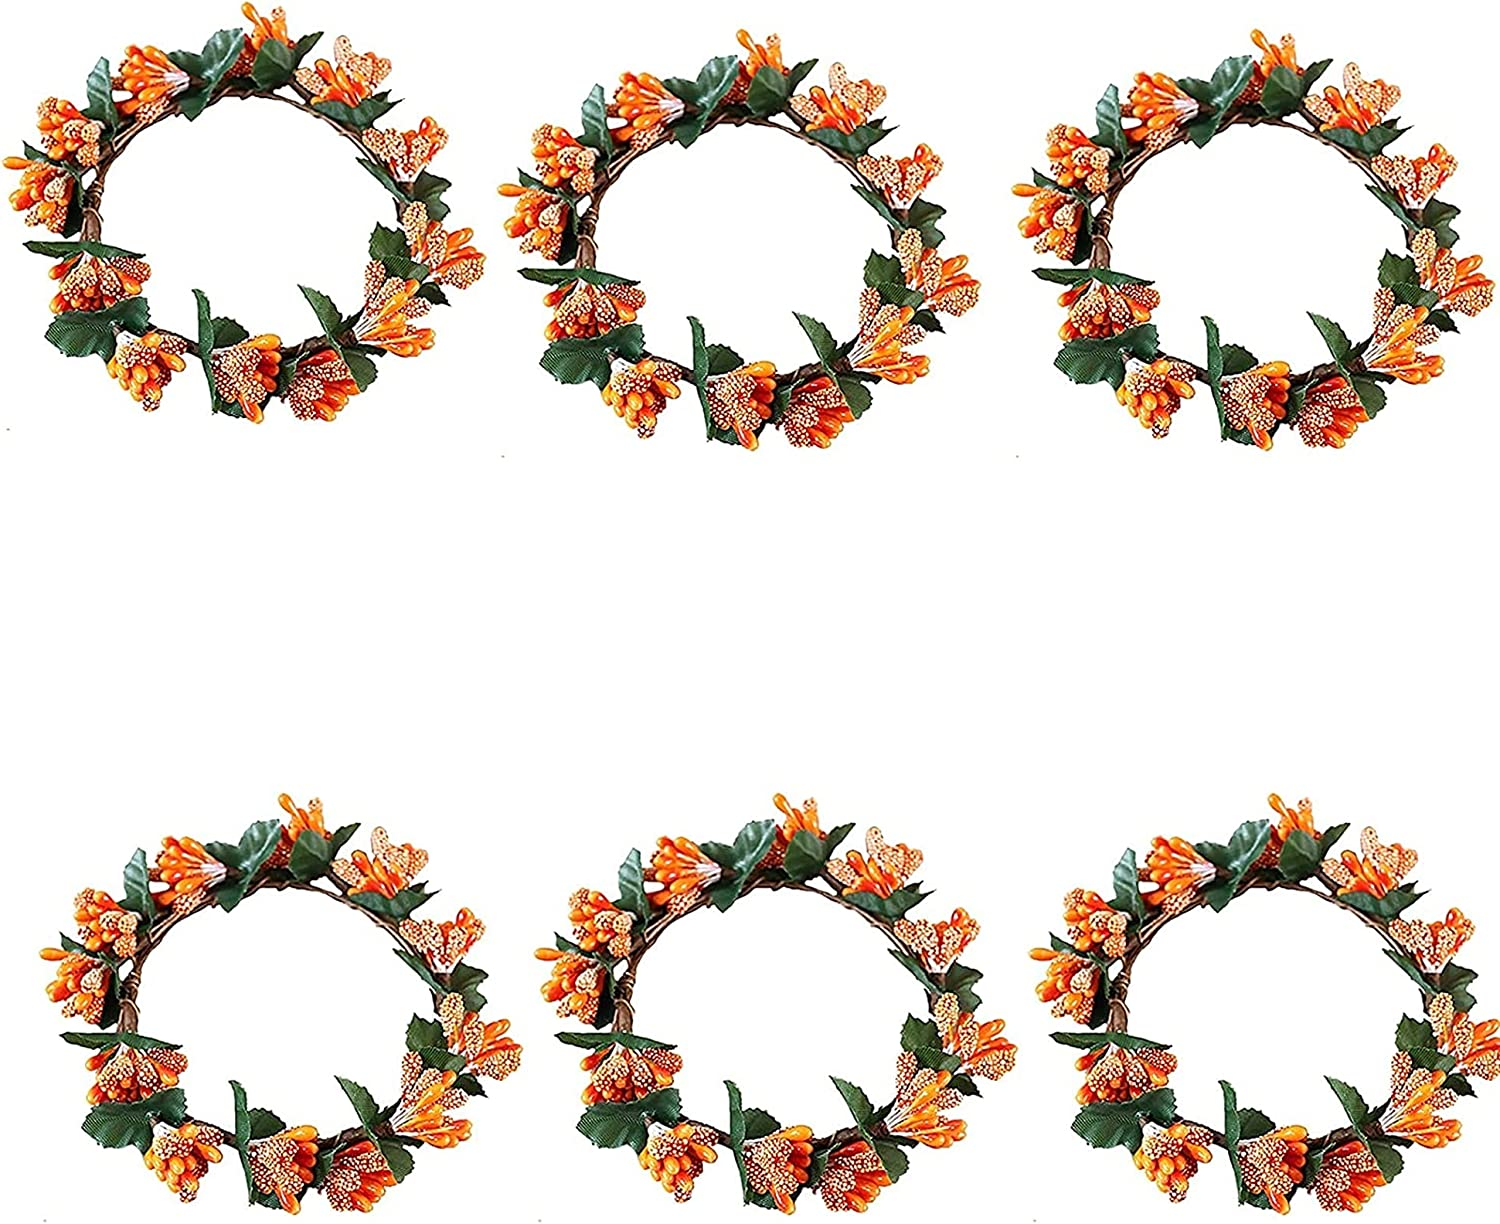 Raheem Christmas Candle Ring Wreaths Min Fall Berry Max 72% OFF Garland 5 ☆ very popular Twig